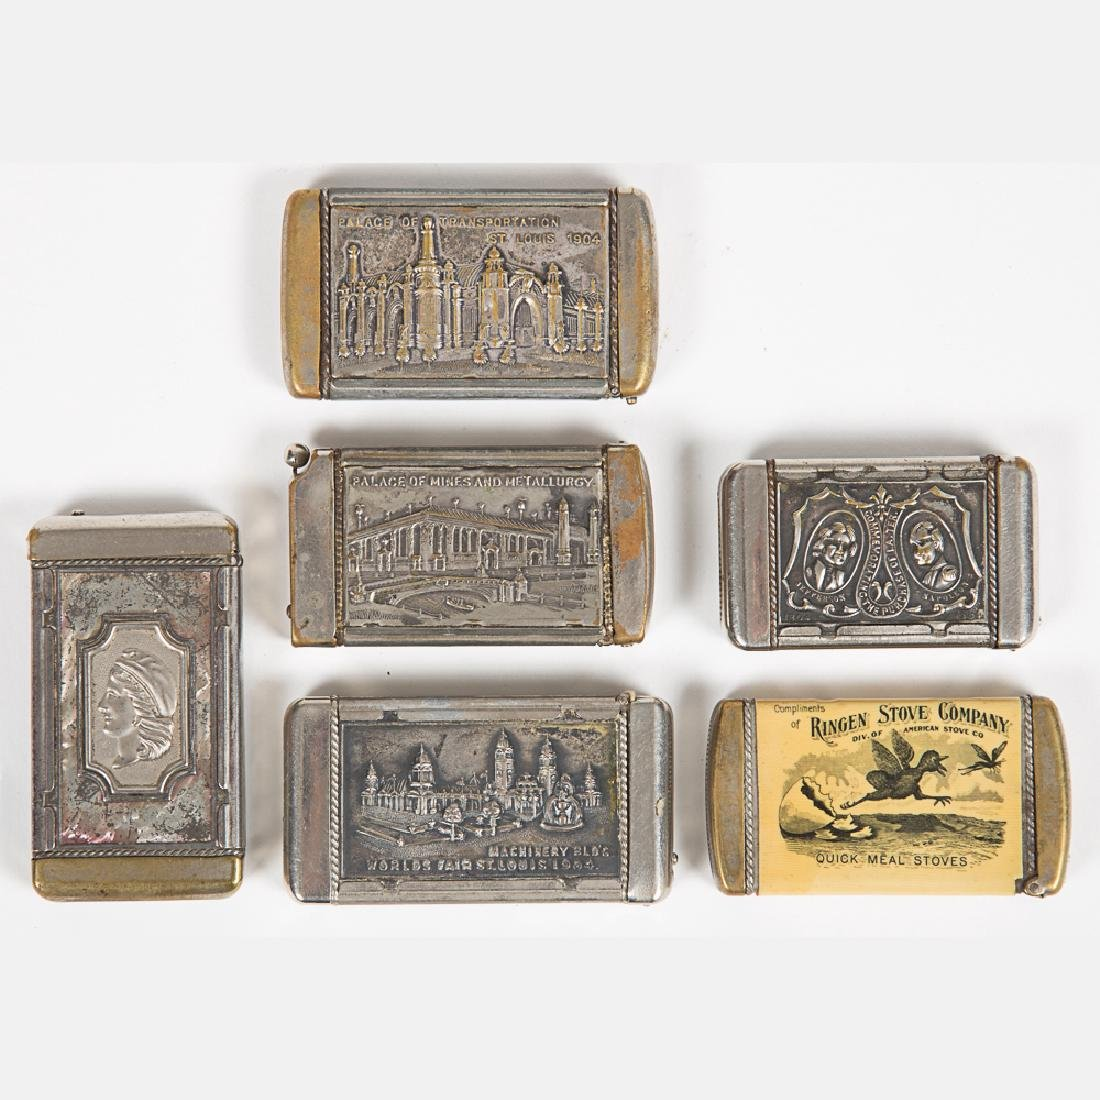 A Group of Six Nickel Plated Match Safe Souvenirs from